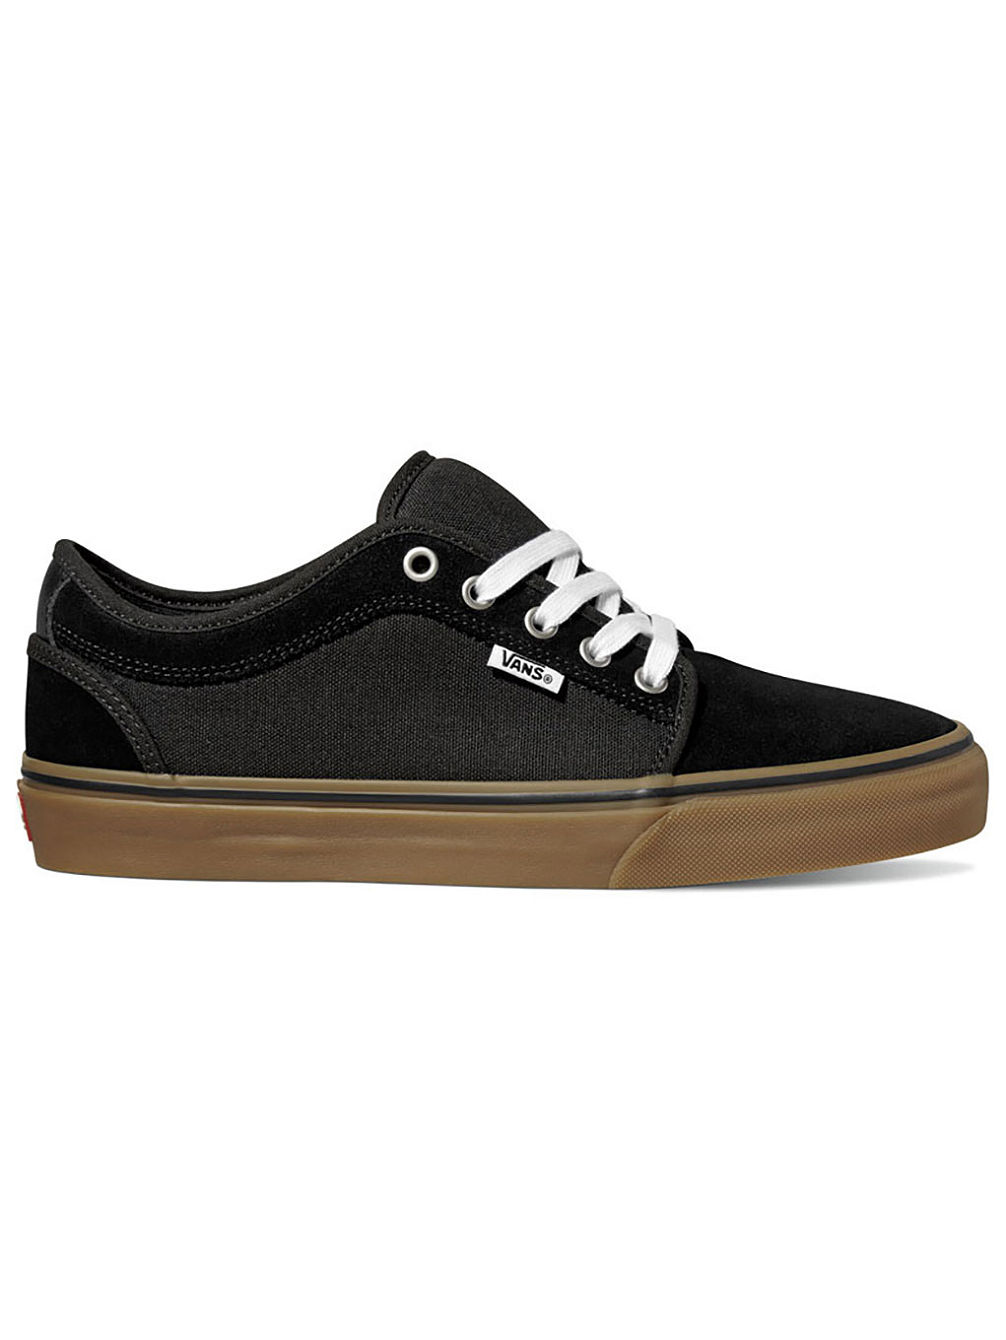 Chukka Low Skate Shoes